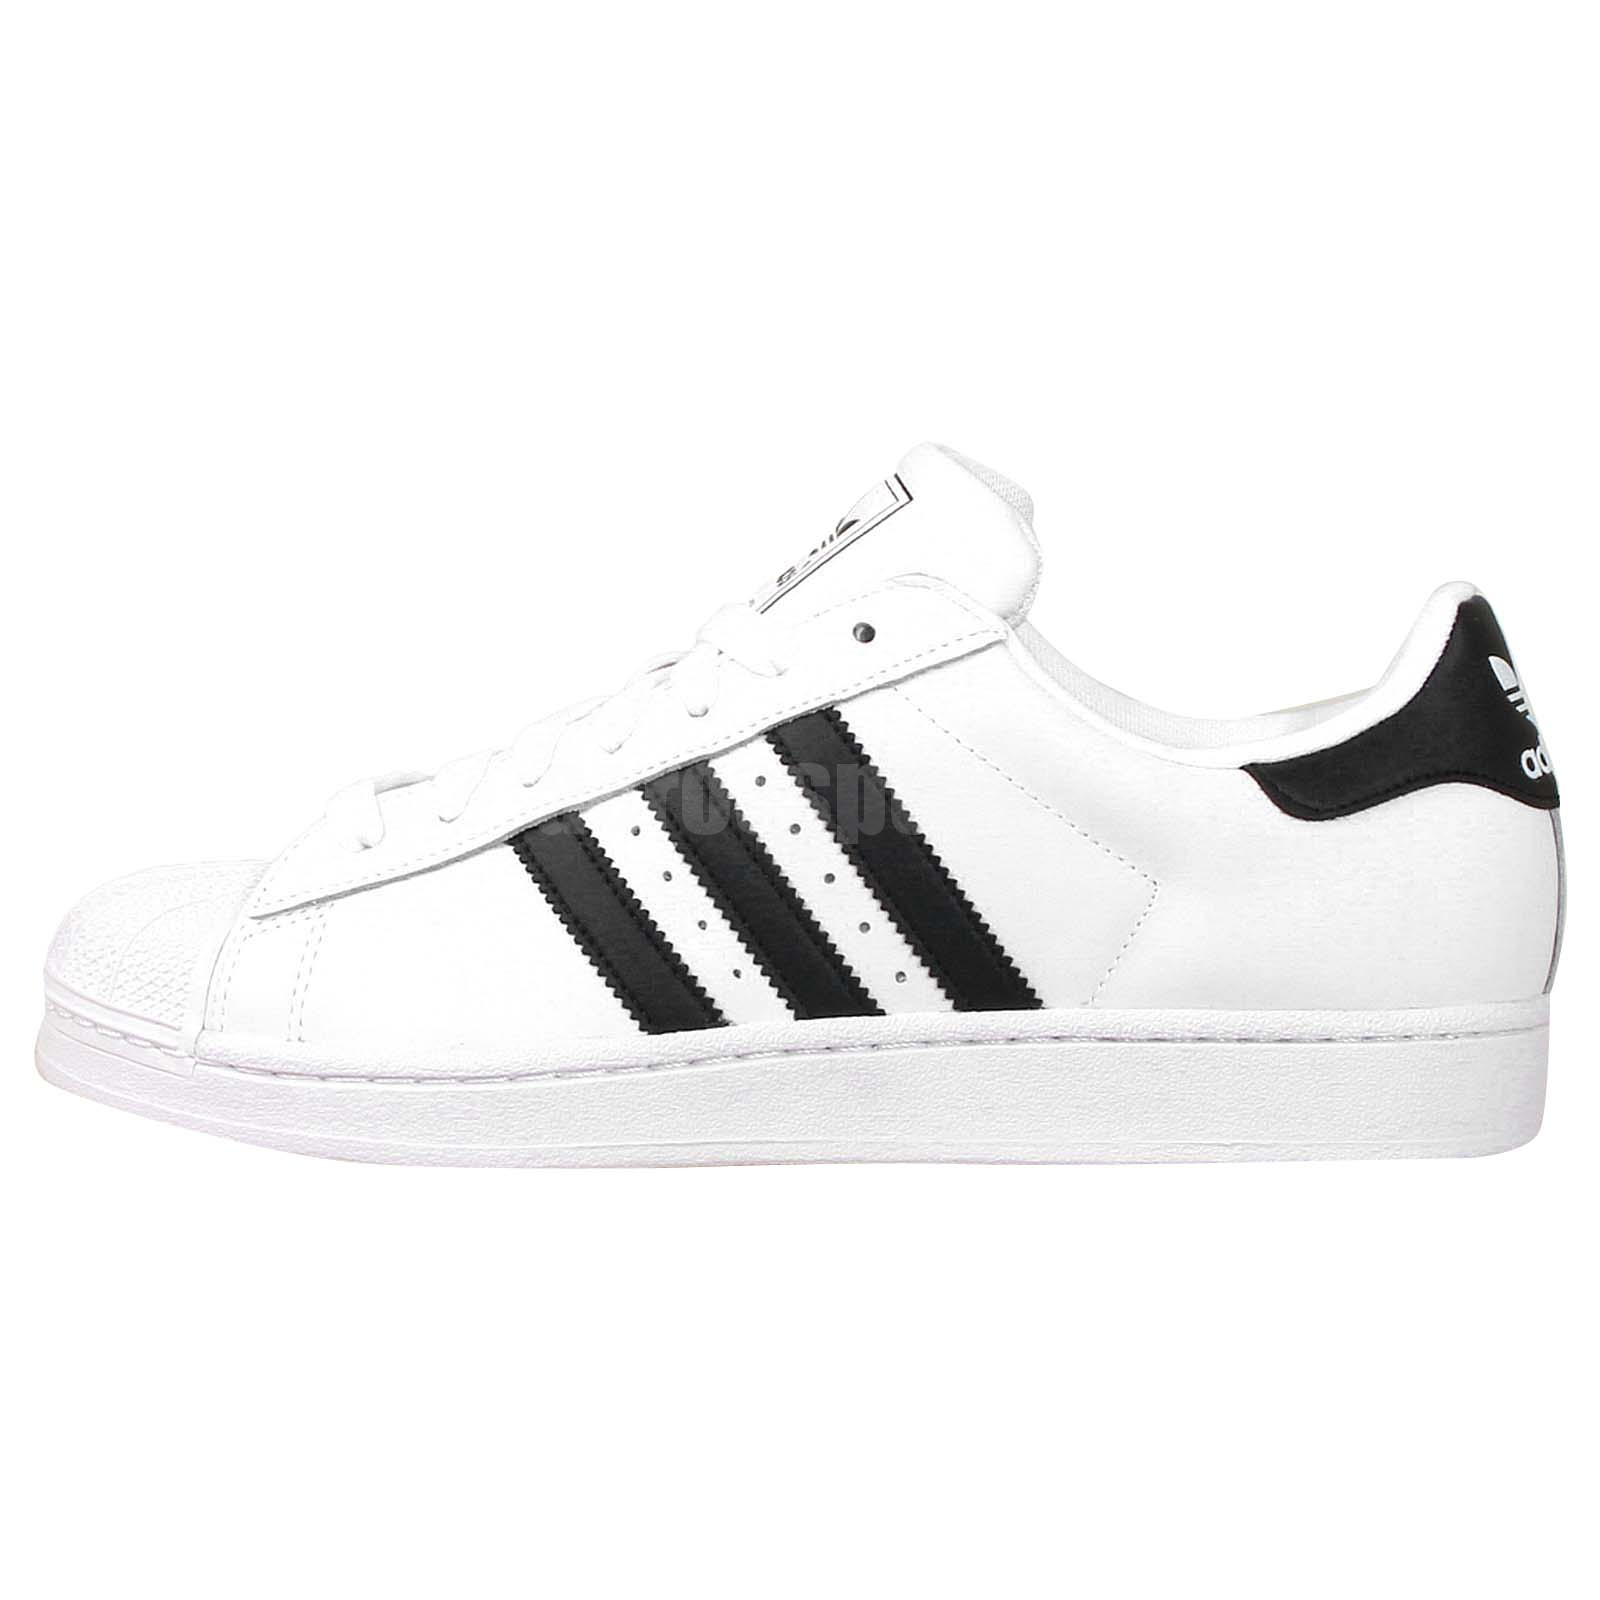 Adidas Originals Superstar II 2 White Black Mens Womens ...